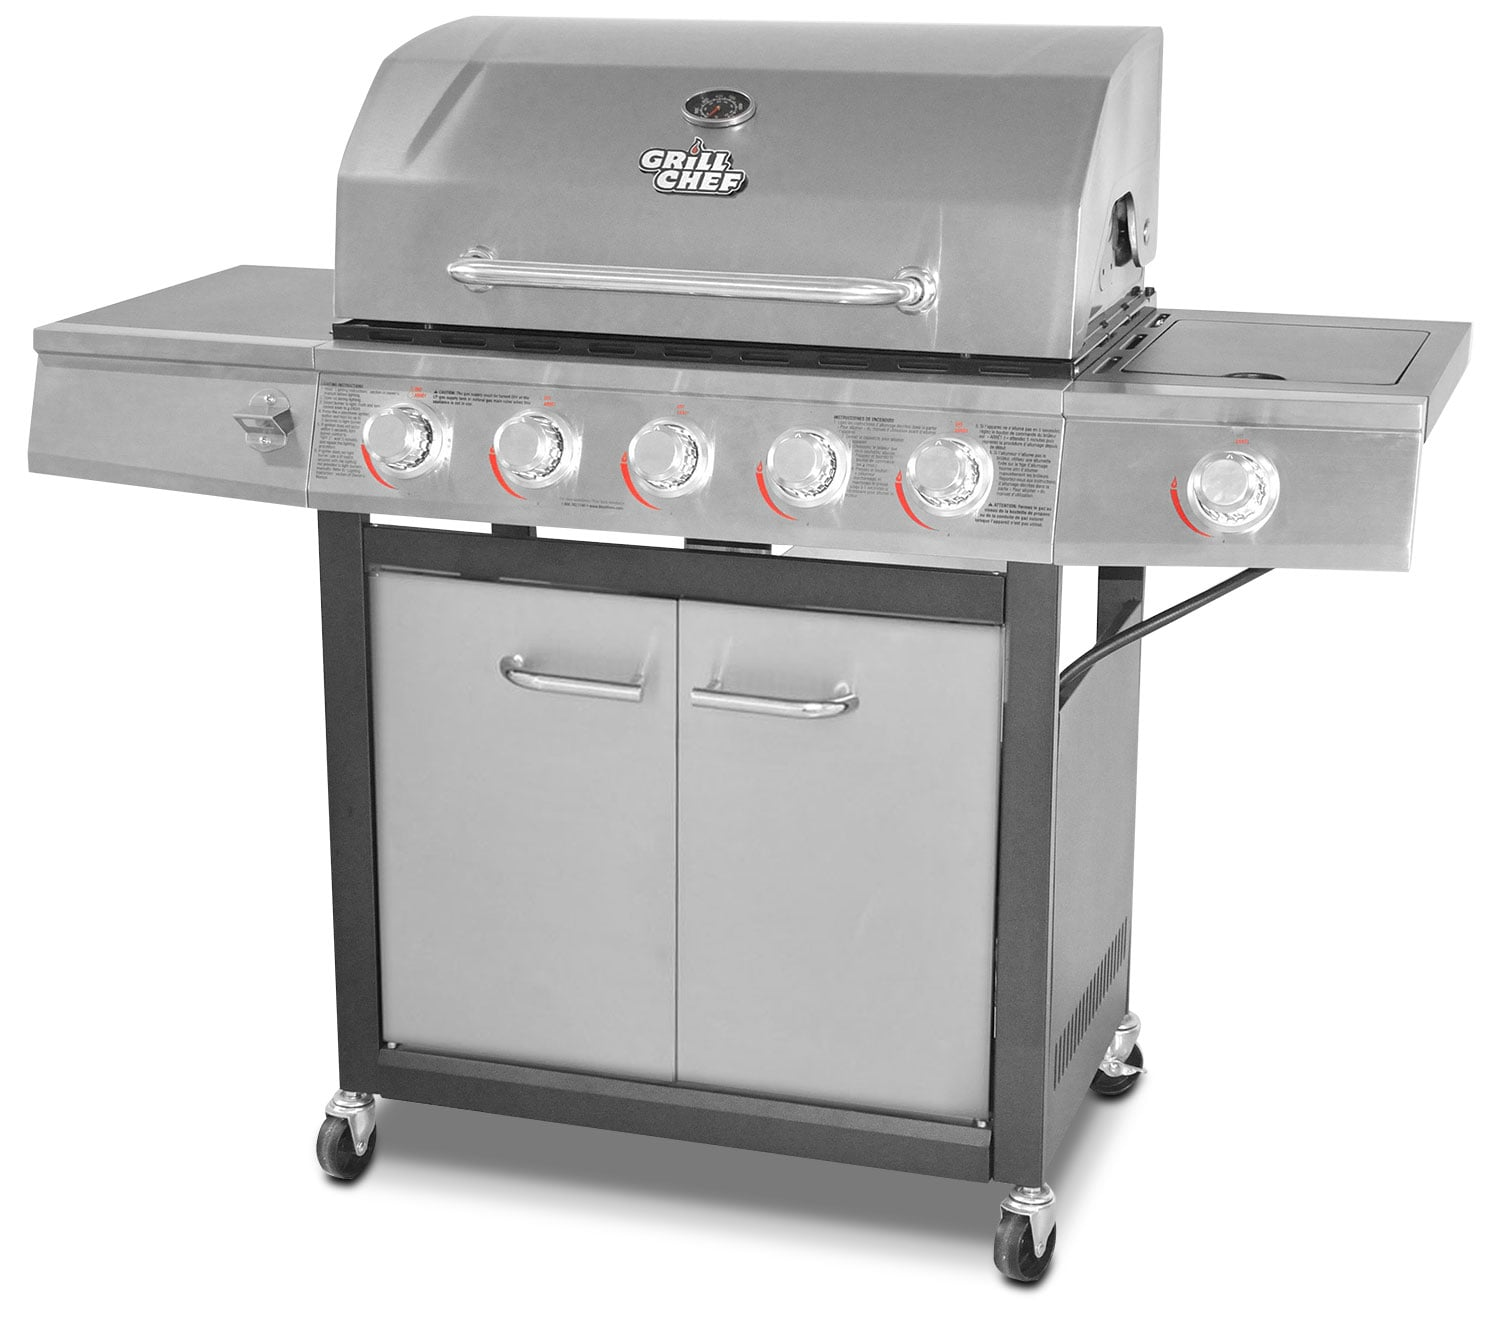 Grill Chef 72,000 BTU Dual-Fuel Barbeque